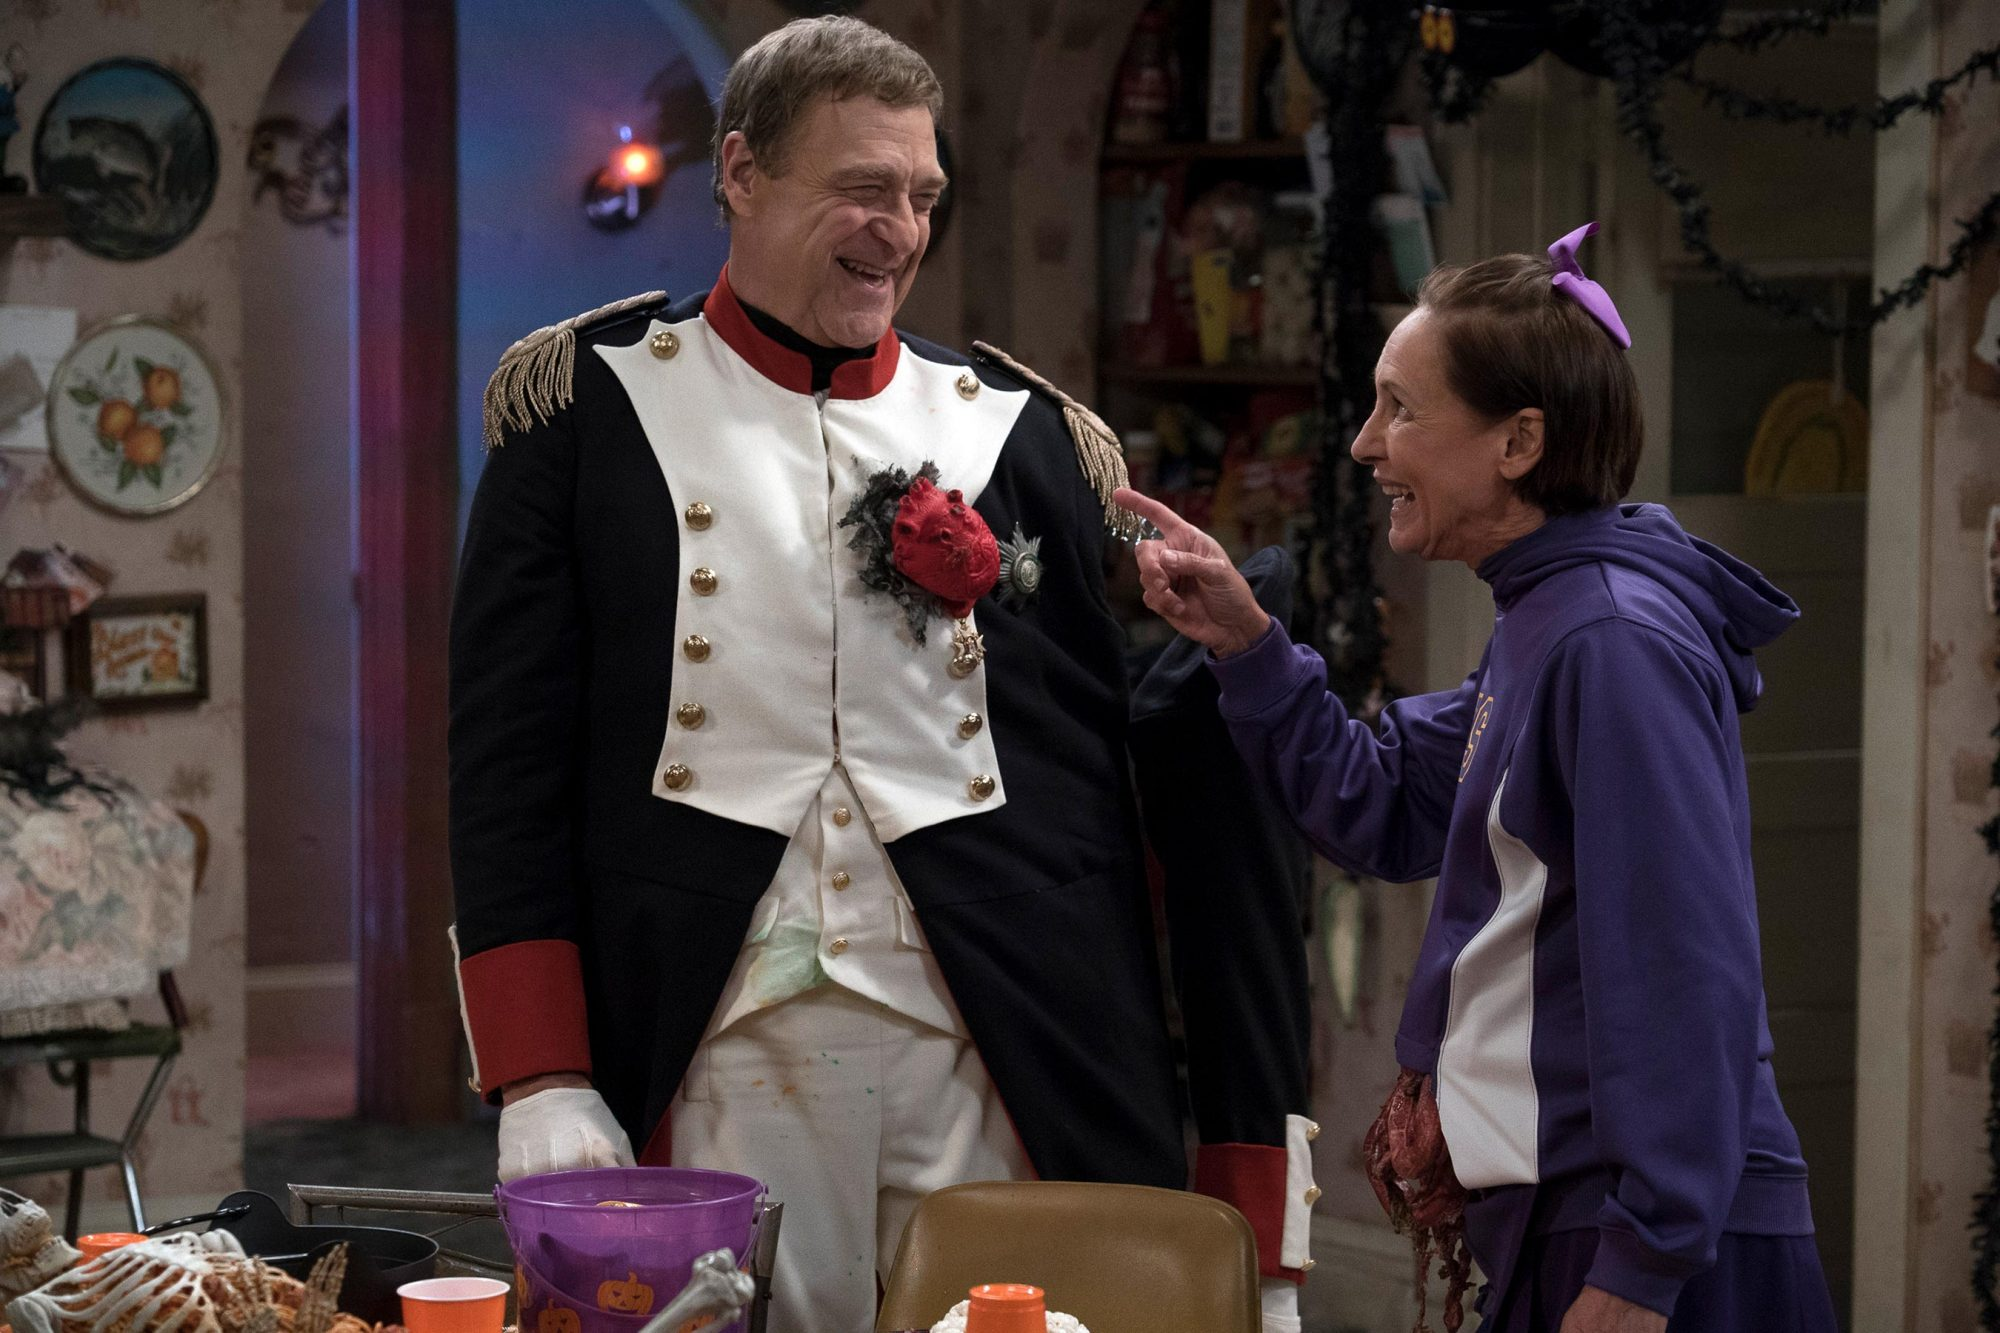 JOHN GOODMAN, LAURIE METCALF